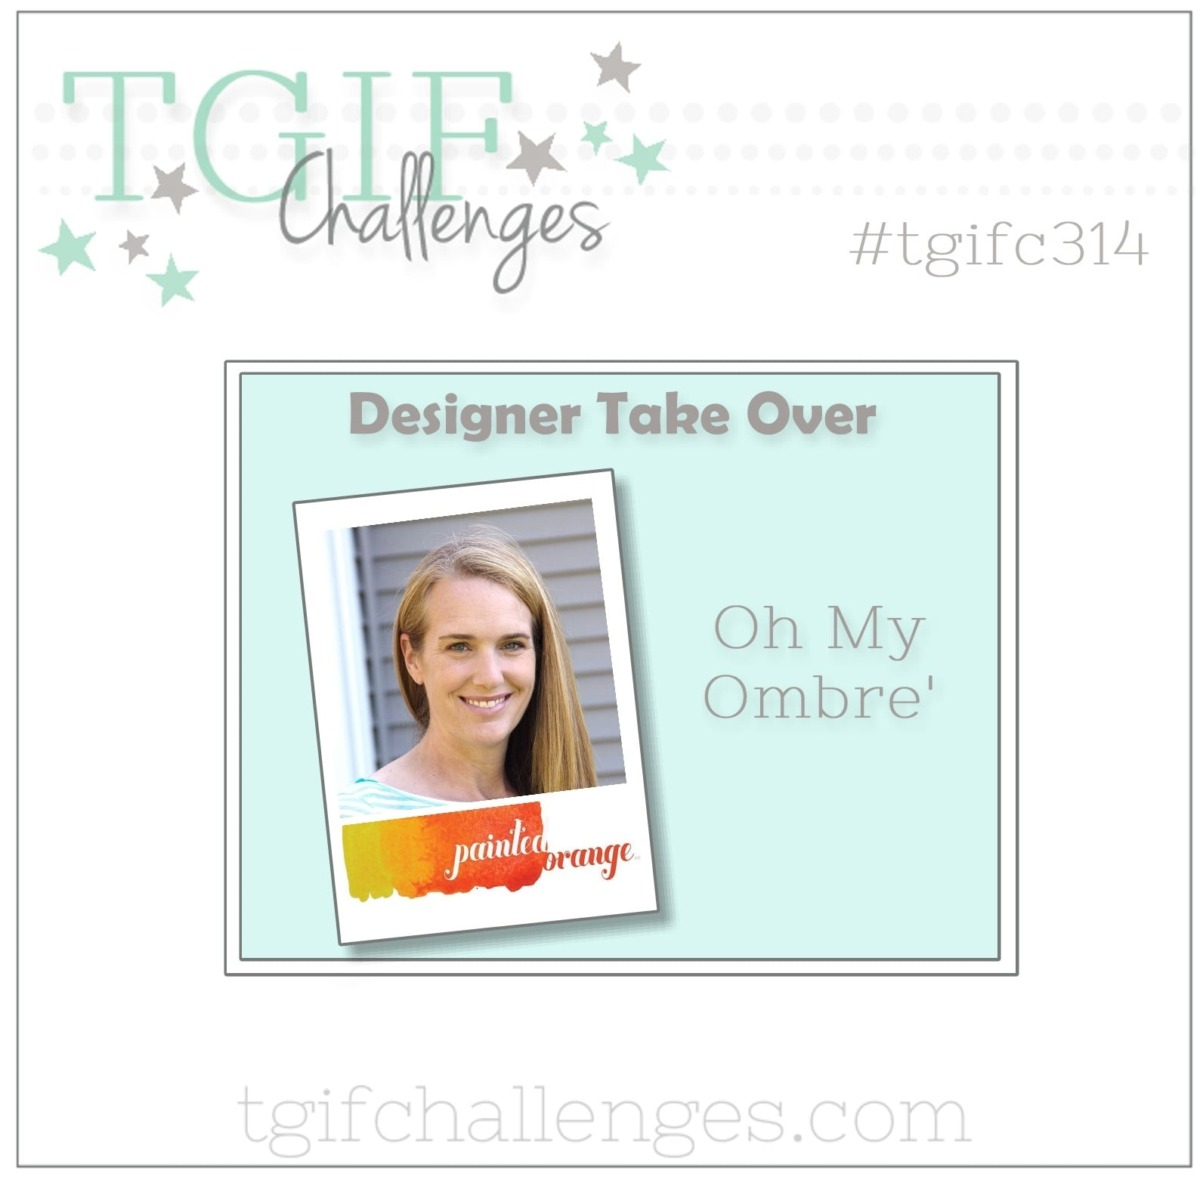 #tgifc314 Oh My Ombre